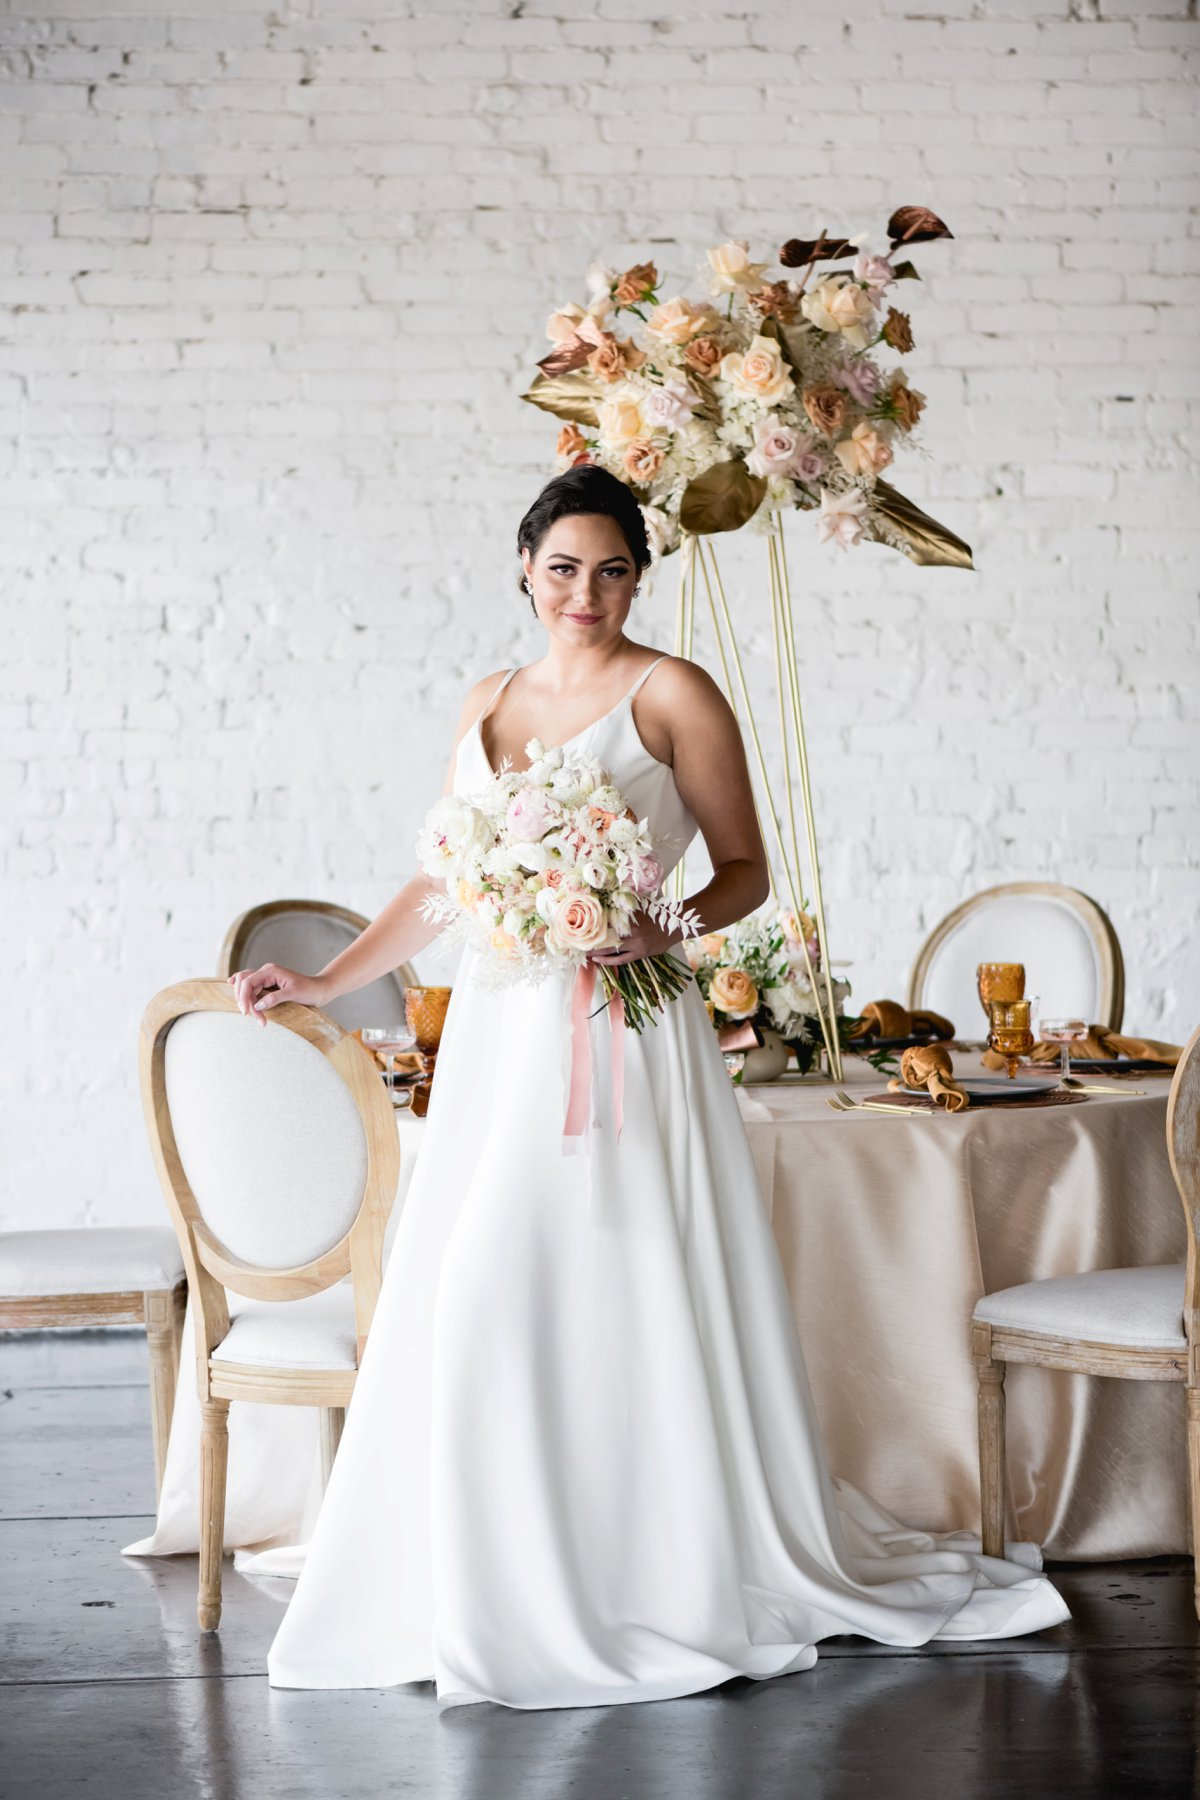 Modern Elegant Blush and Gold Wedding Ideas via TheELD.com